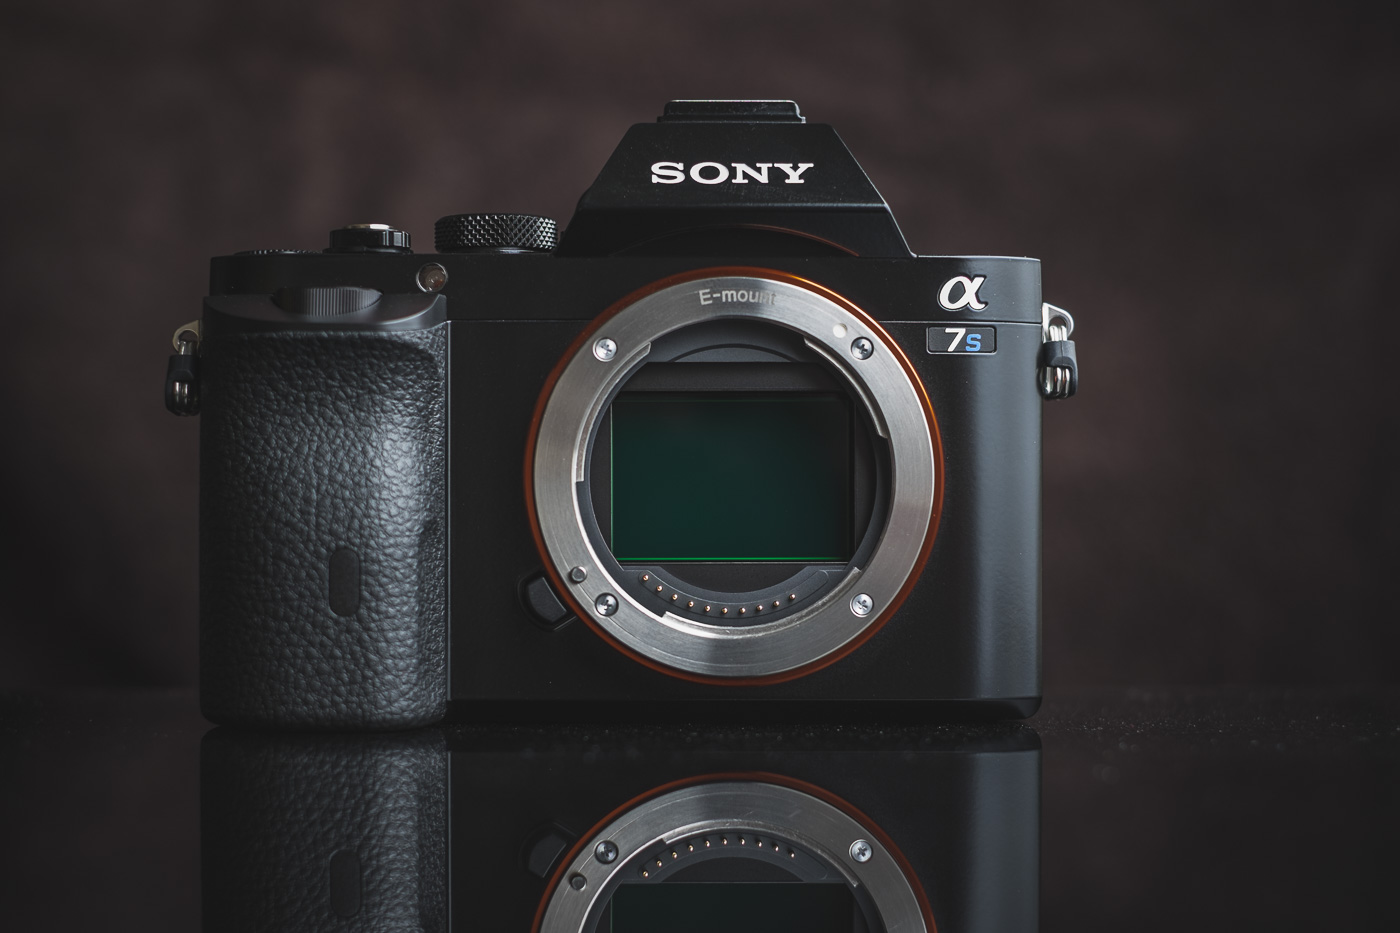 The Full Frame Sensor of the Sony a7S